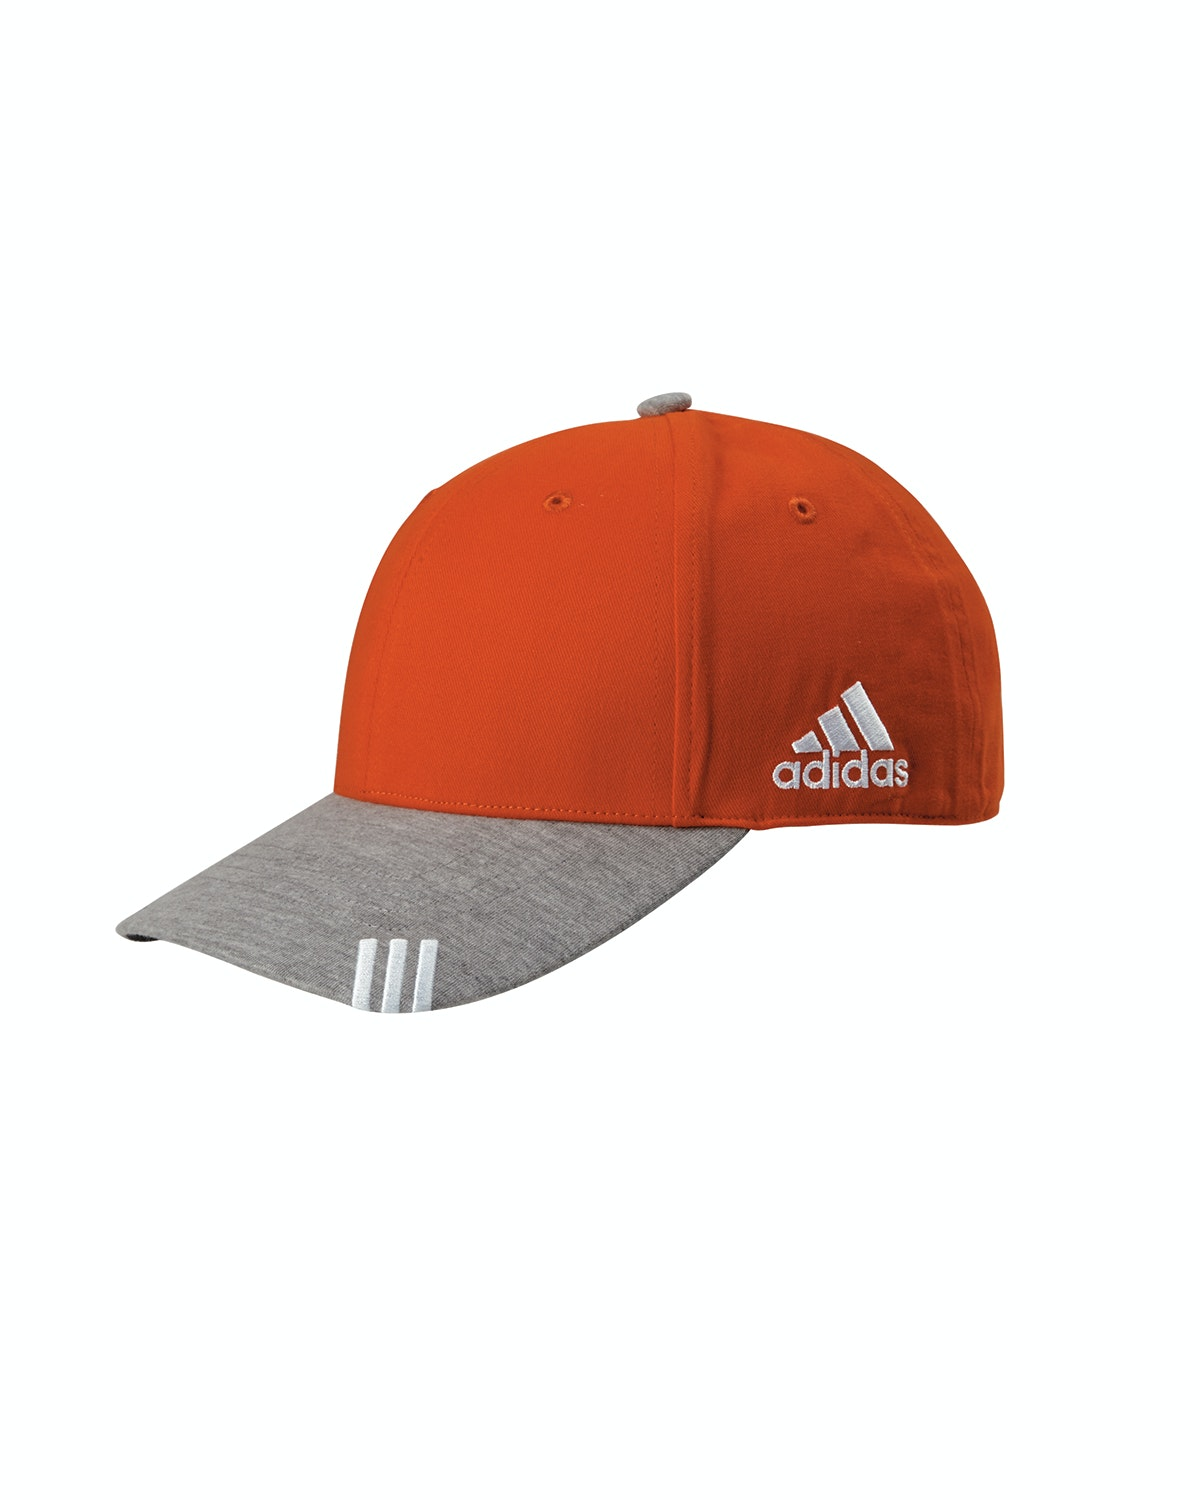 Adidas A625 Collegiate Orange/Grey Heather